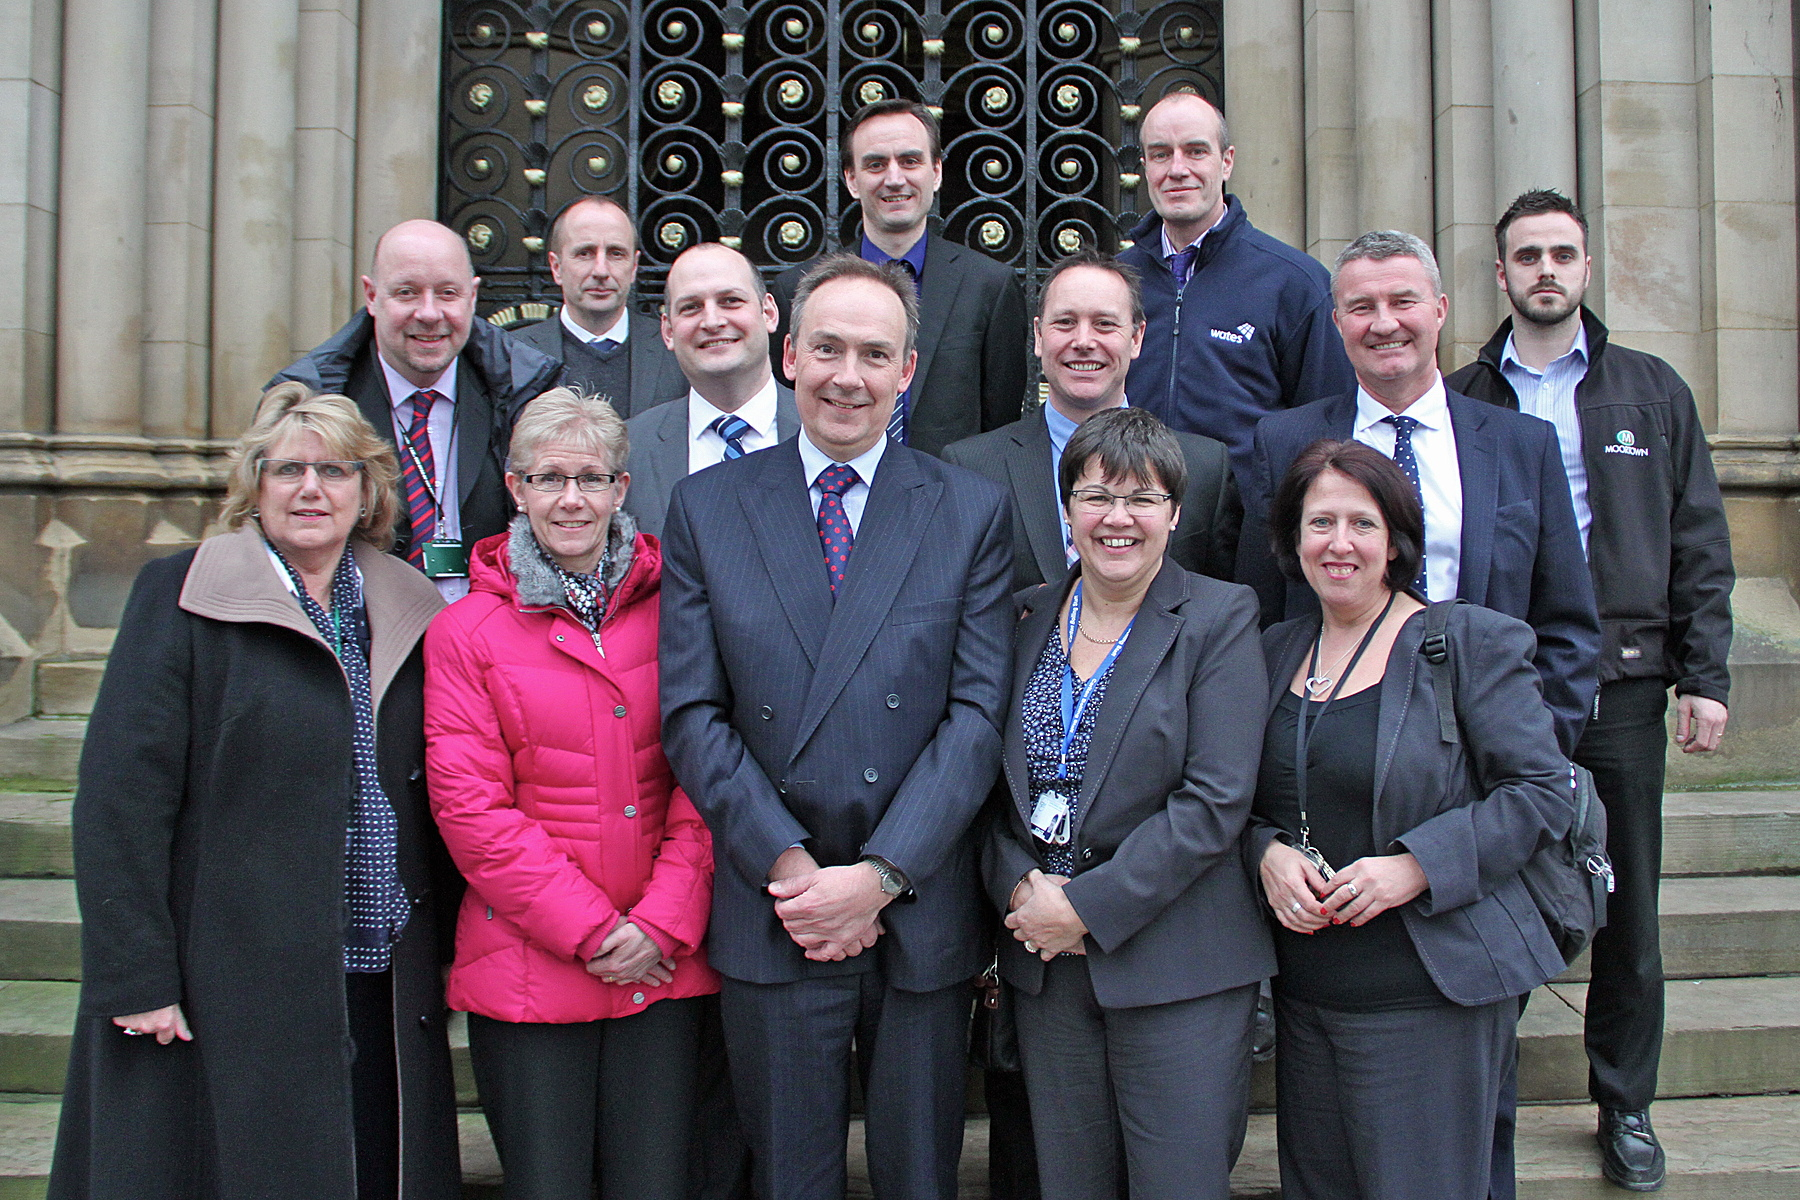 PLANNING AHEAD: Some of the people involved in the new training scheme launched in Bradford